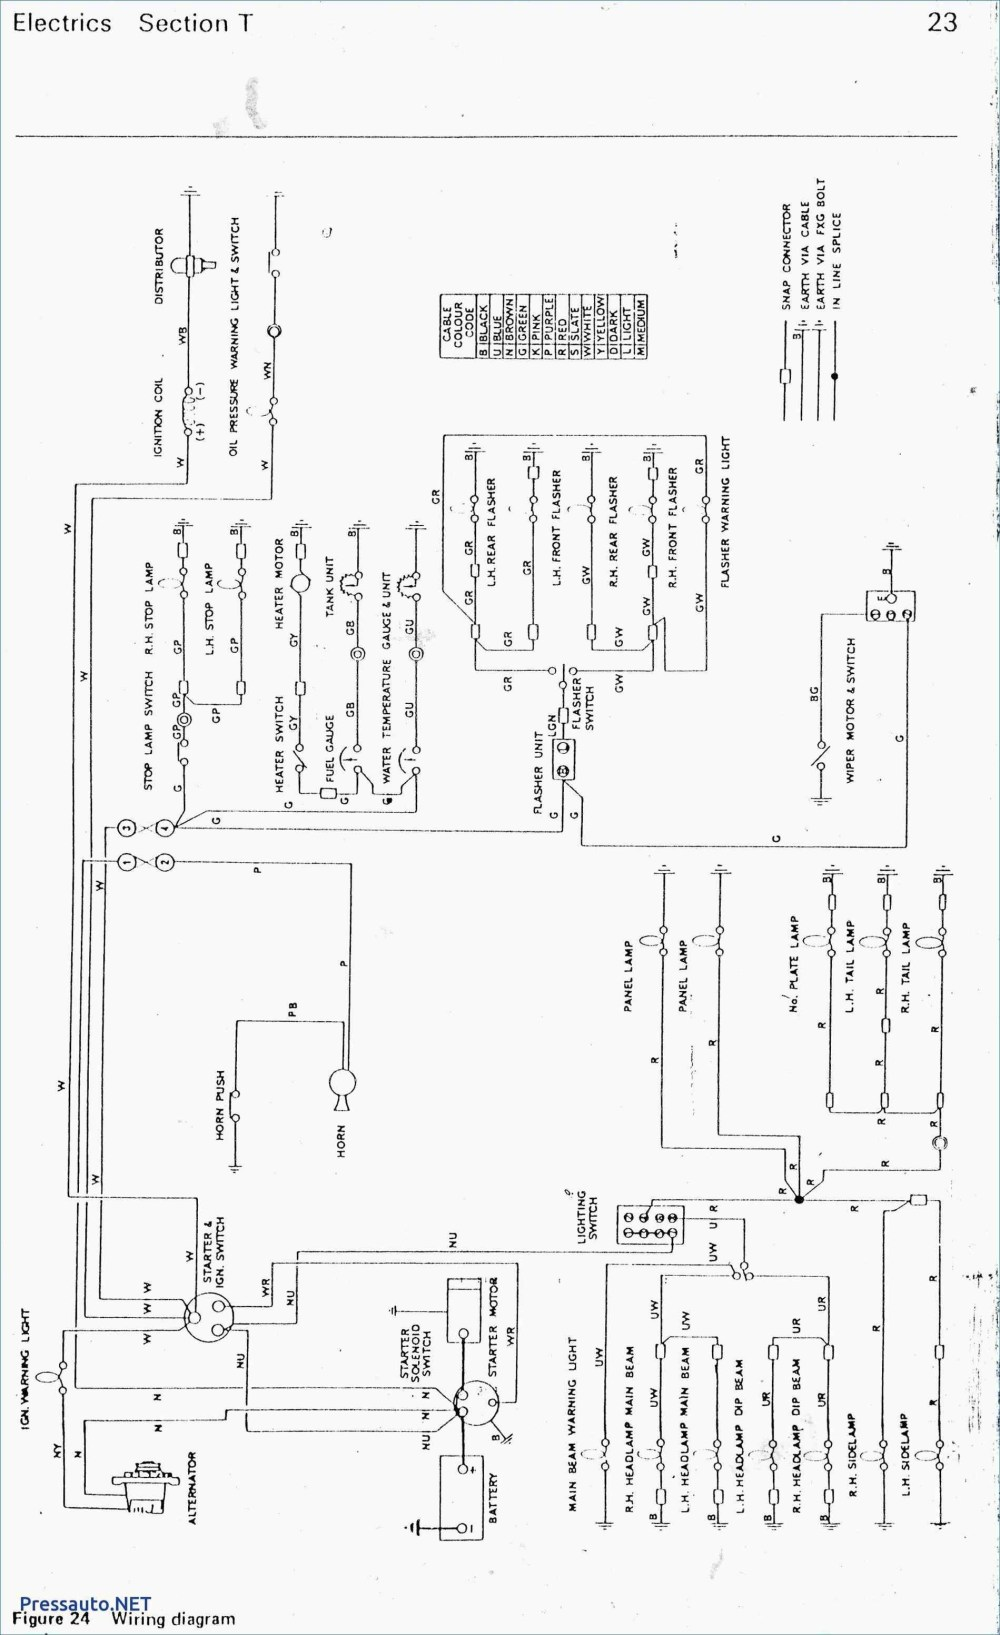 medium resolution of wiring yale schematic fork lift erco3aan wiring diagram paper r amp m hoist wiring diagram